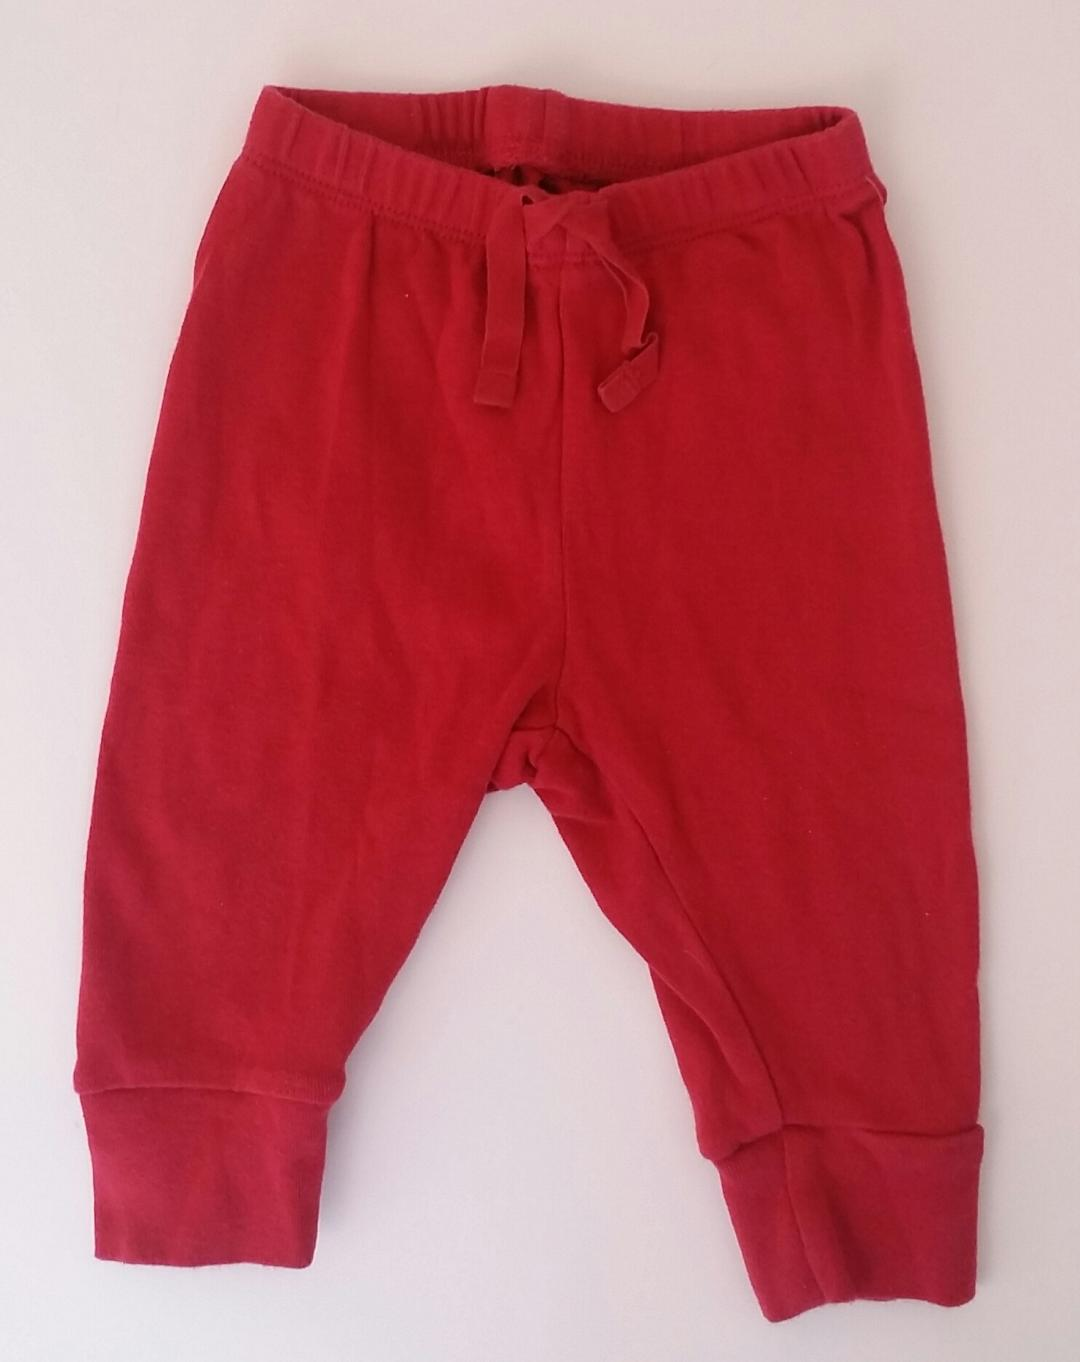 Gap-Gap-3-6-MONTHS-Pull-on-Pants_2138531A.jpg